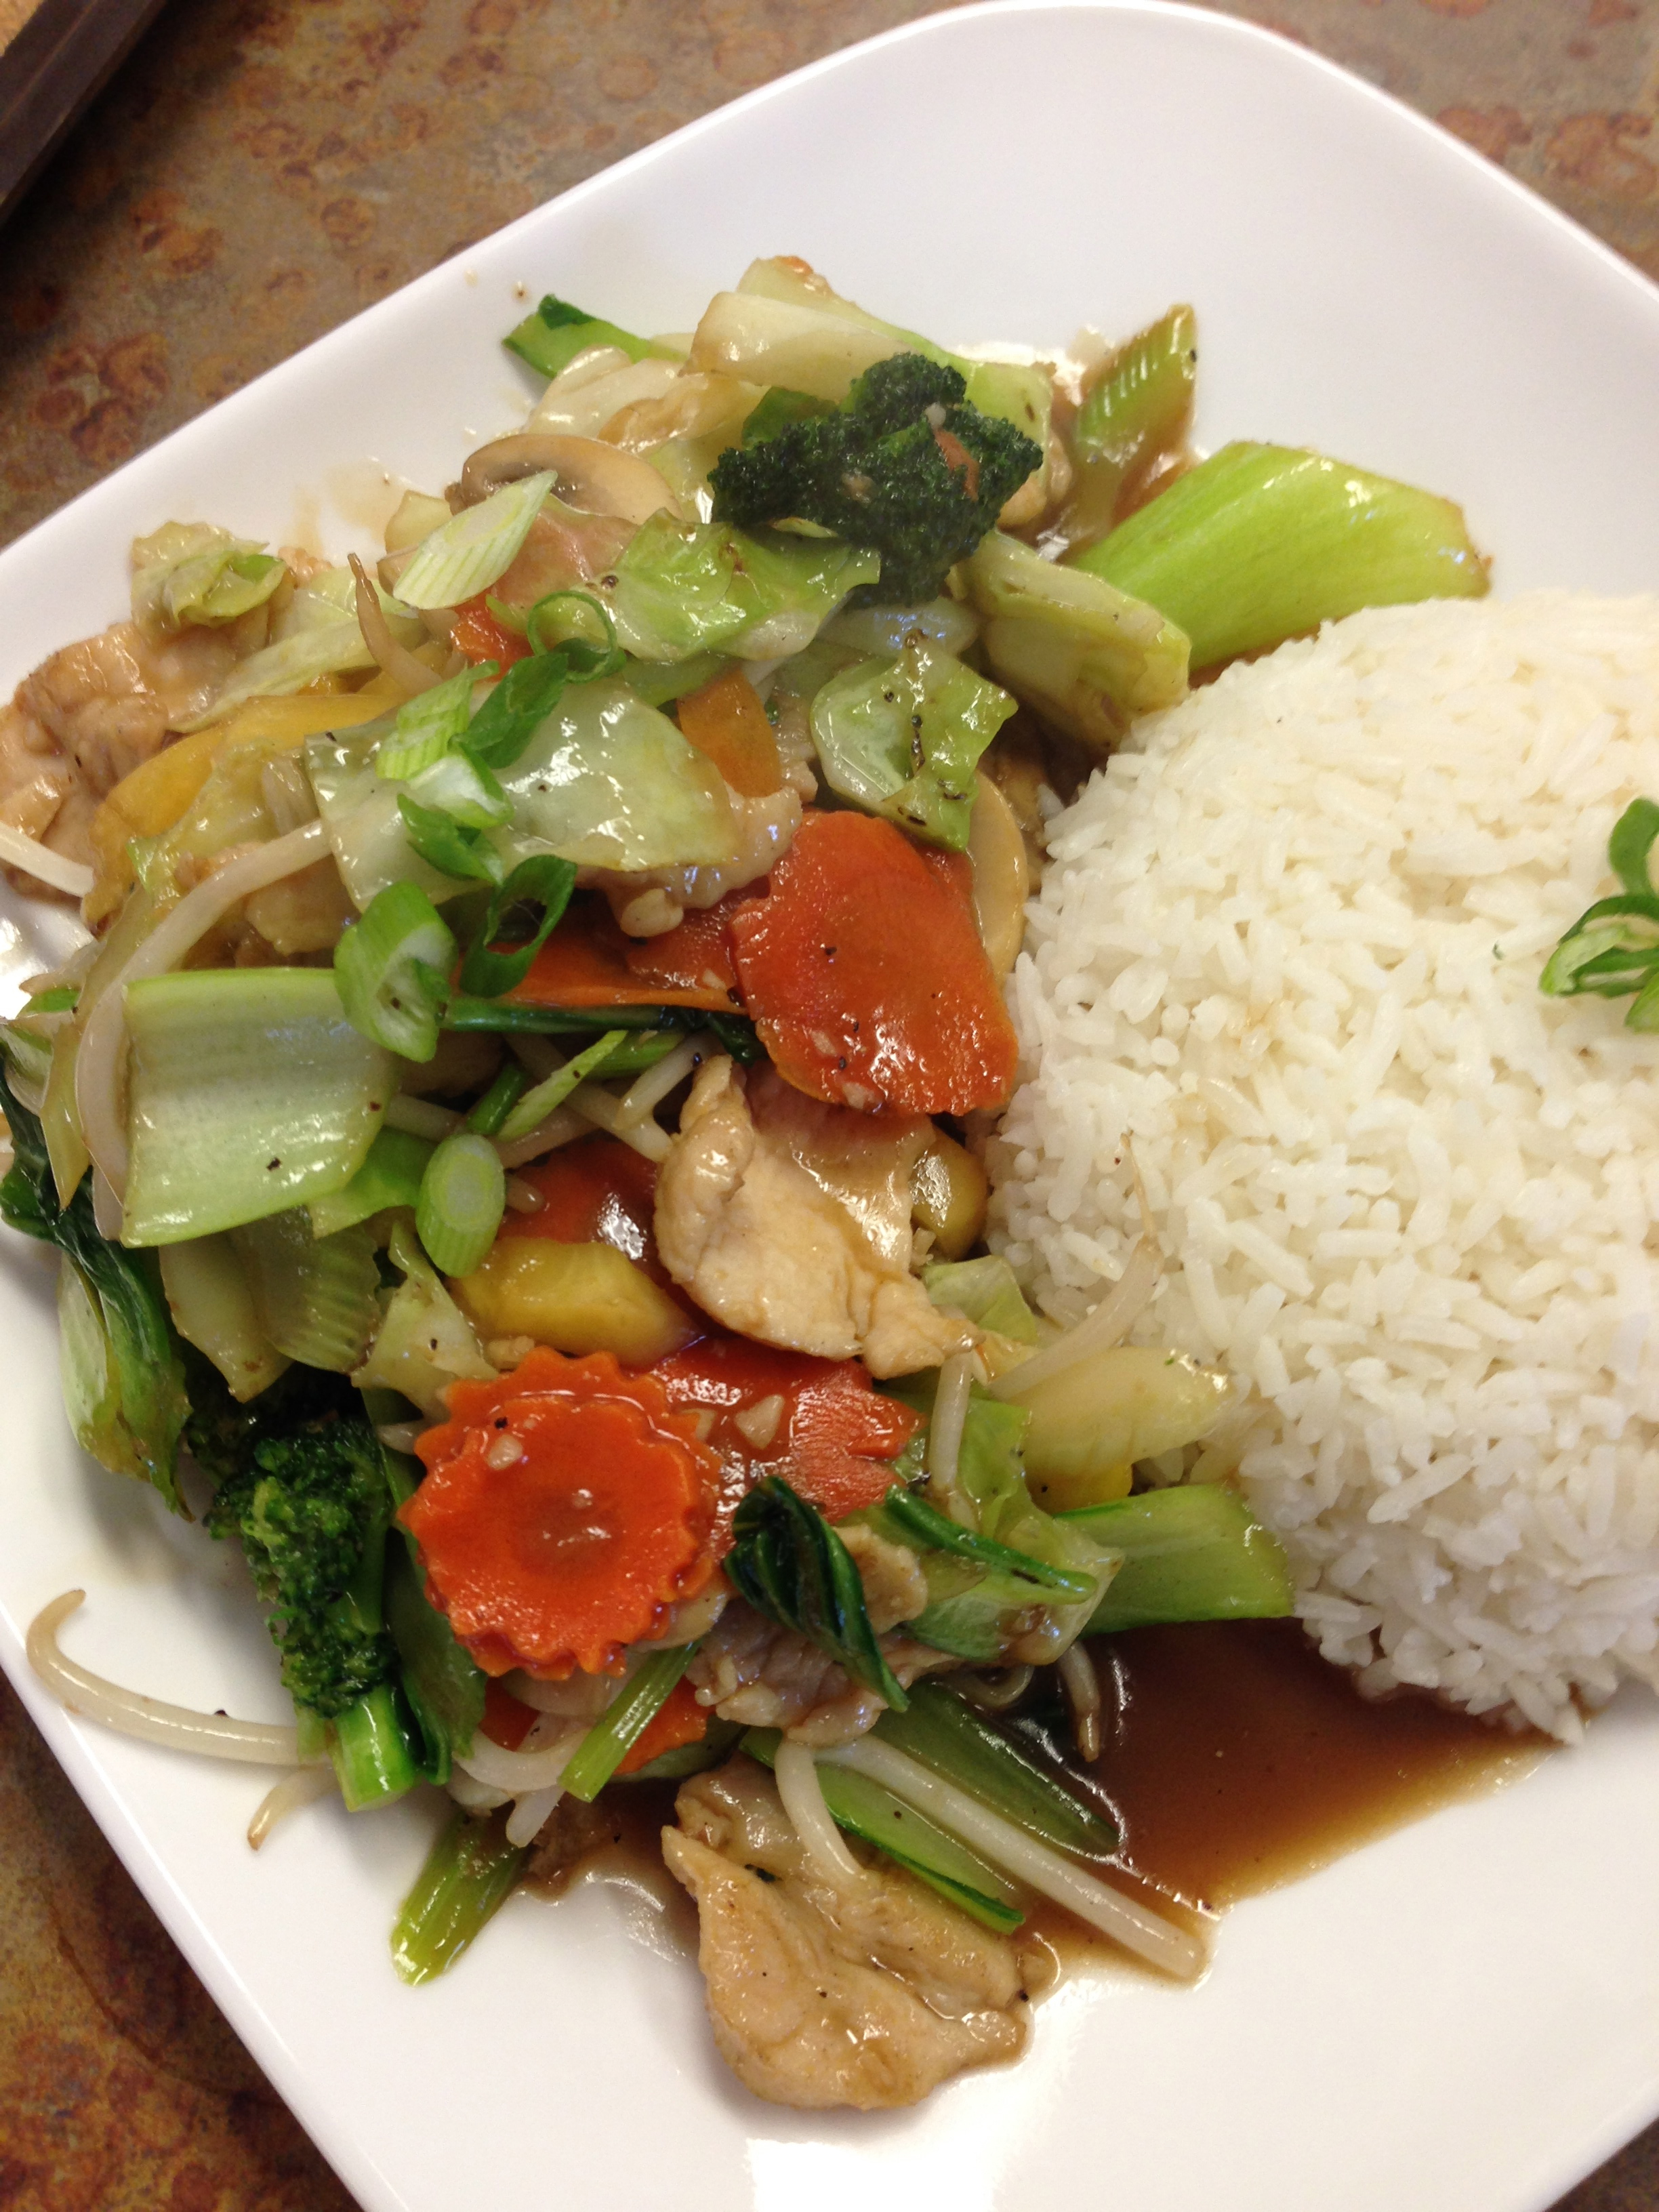 #22 STIR FRIED VEGETABLES